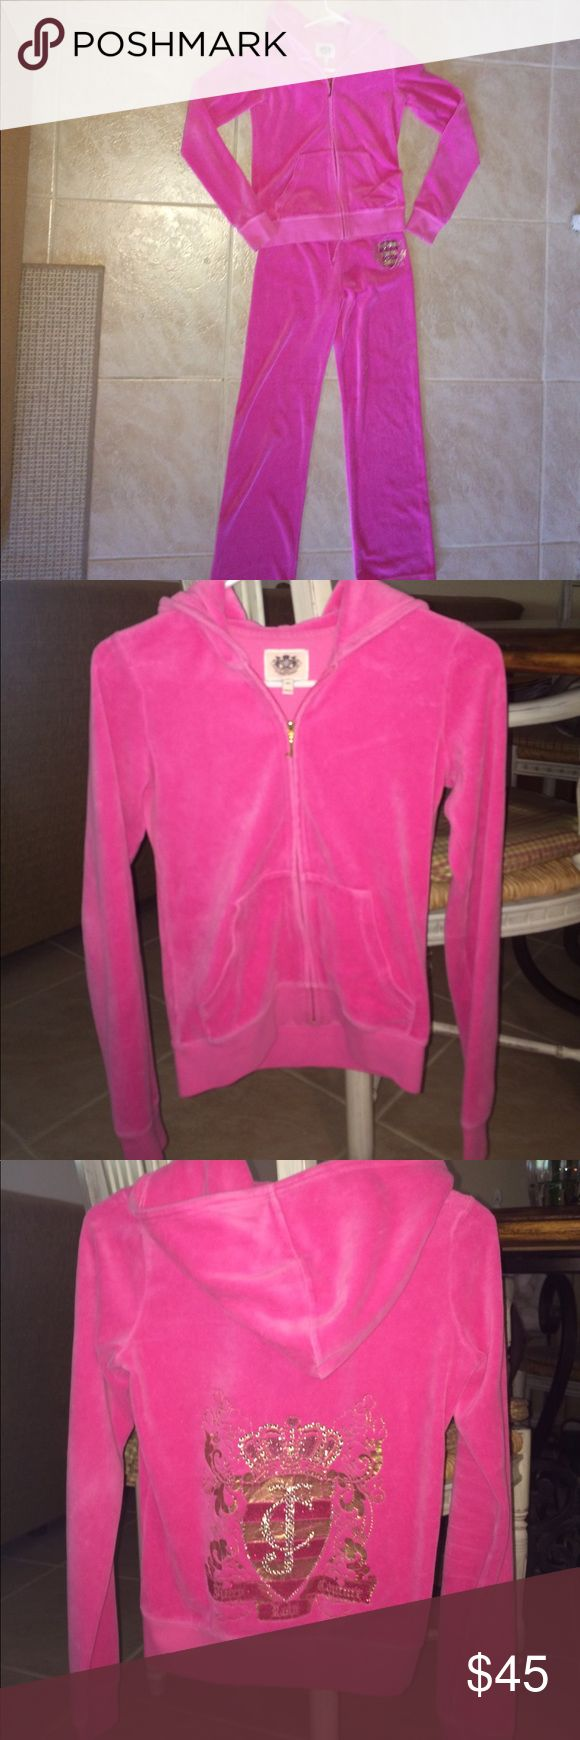 Juicy Couture pink sweatsuit Pink Juicy Couture sweatpants with matching jacket! Size girls extra large. Like new condition! Juicy Couture Matching Sets